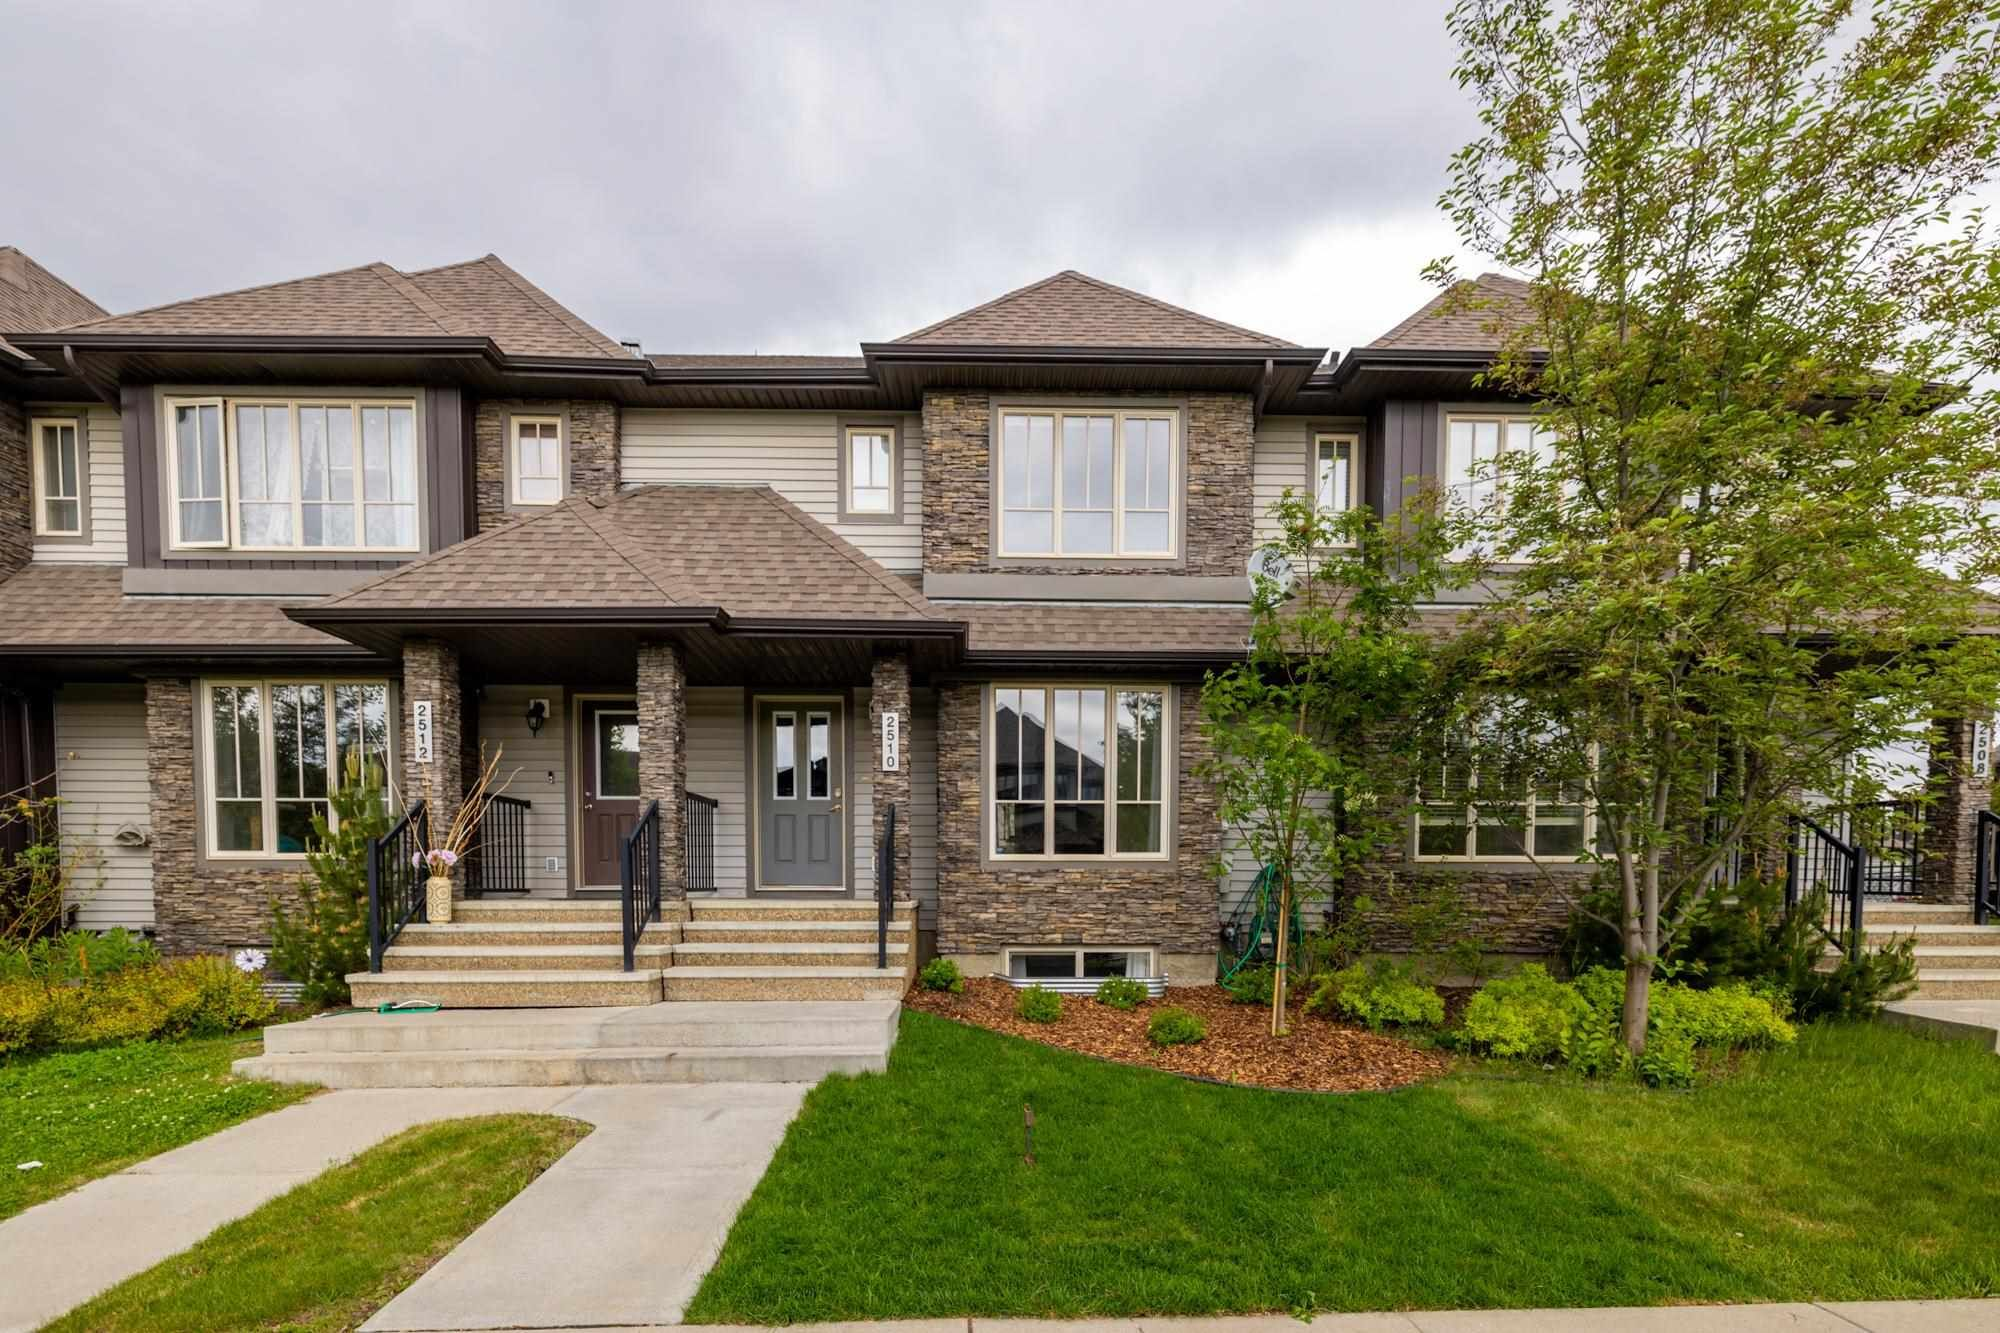 Main Photo: 2510 ANDERSON Way in Edmonton: Zone 56 Attached Home for sale : MLS®# E4248946